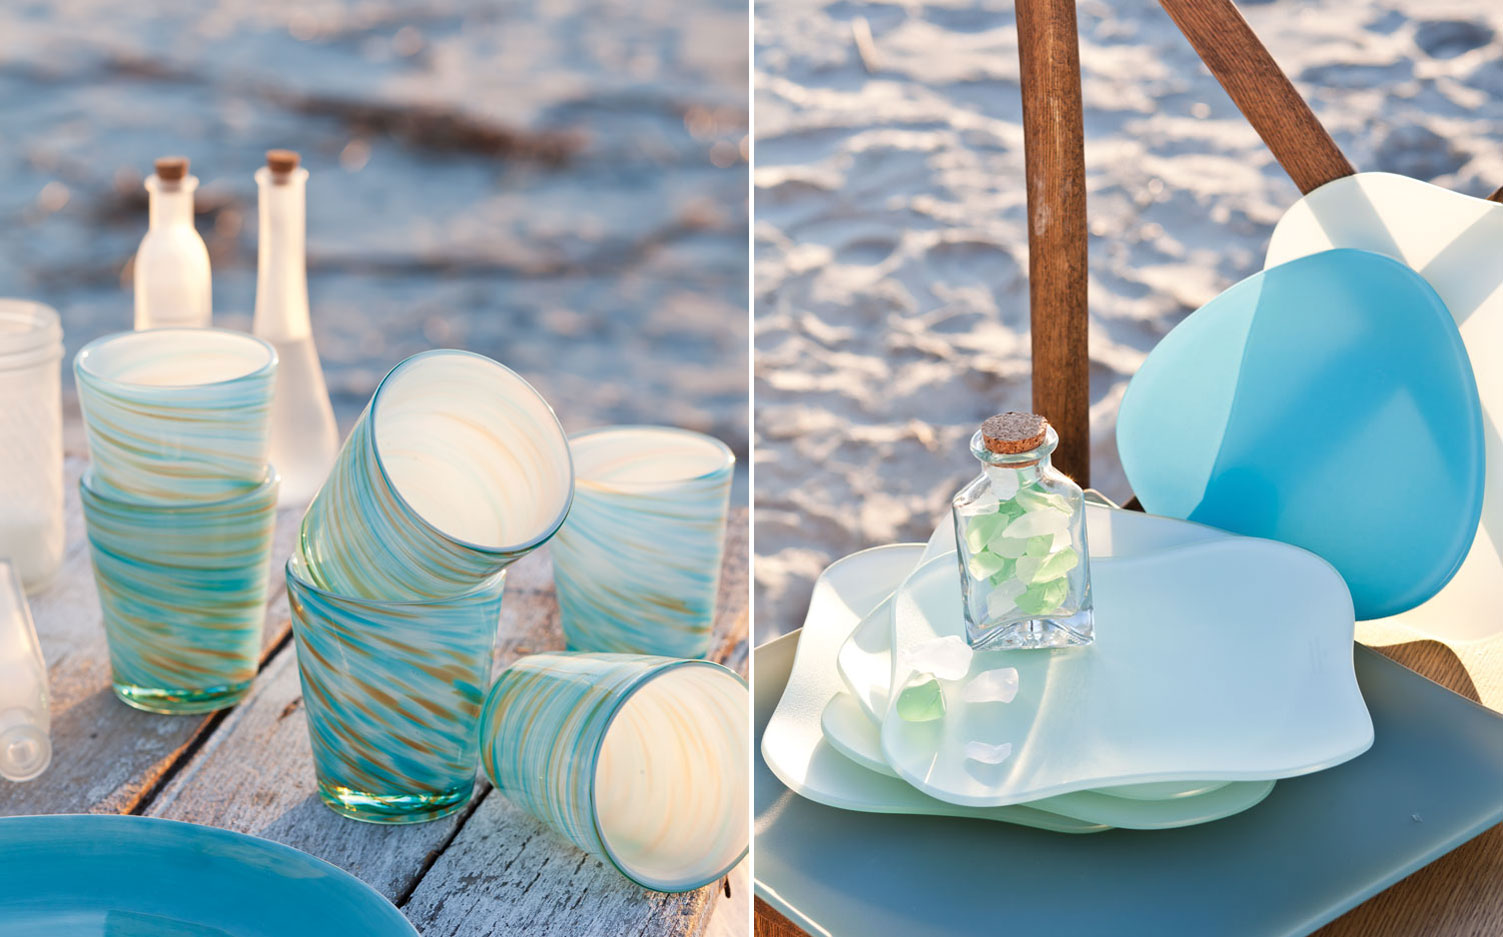 A picture of blue and green cups inspired by the sea and a picture of blue and white plates inspired by the sea